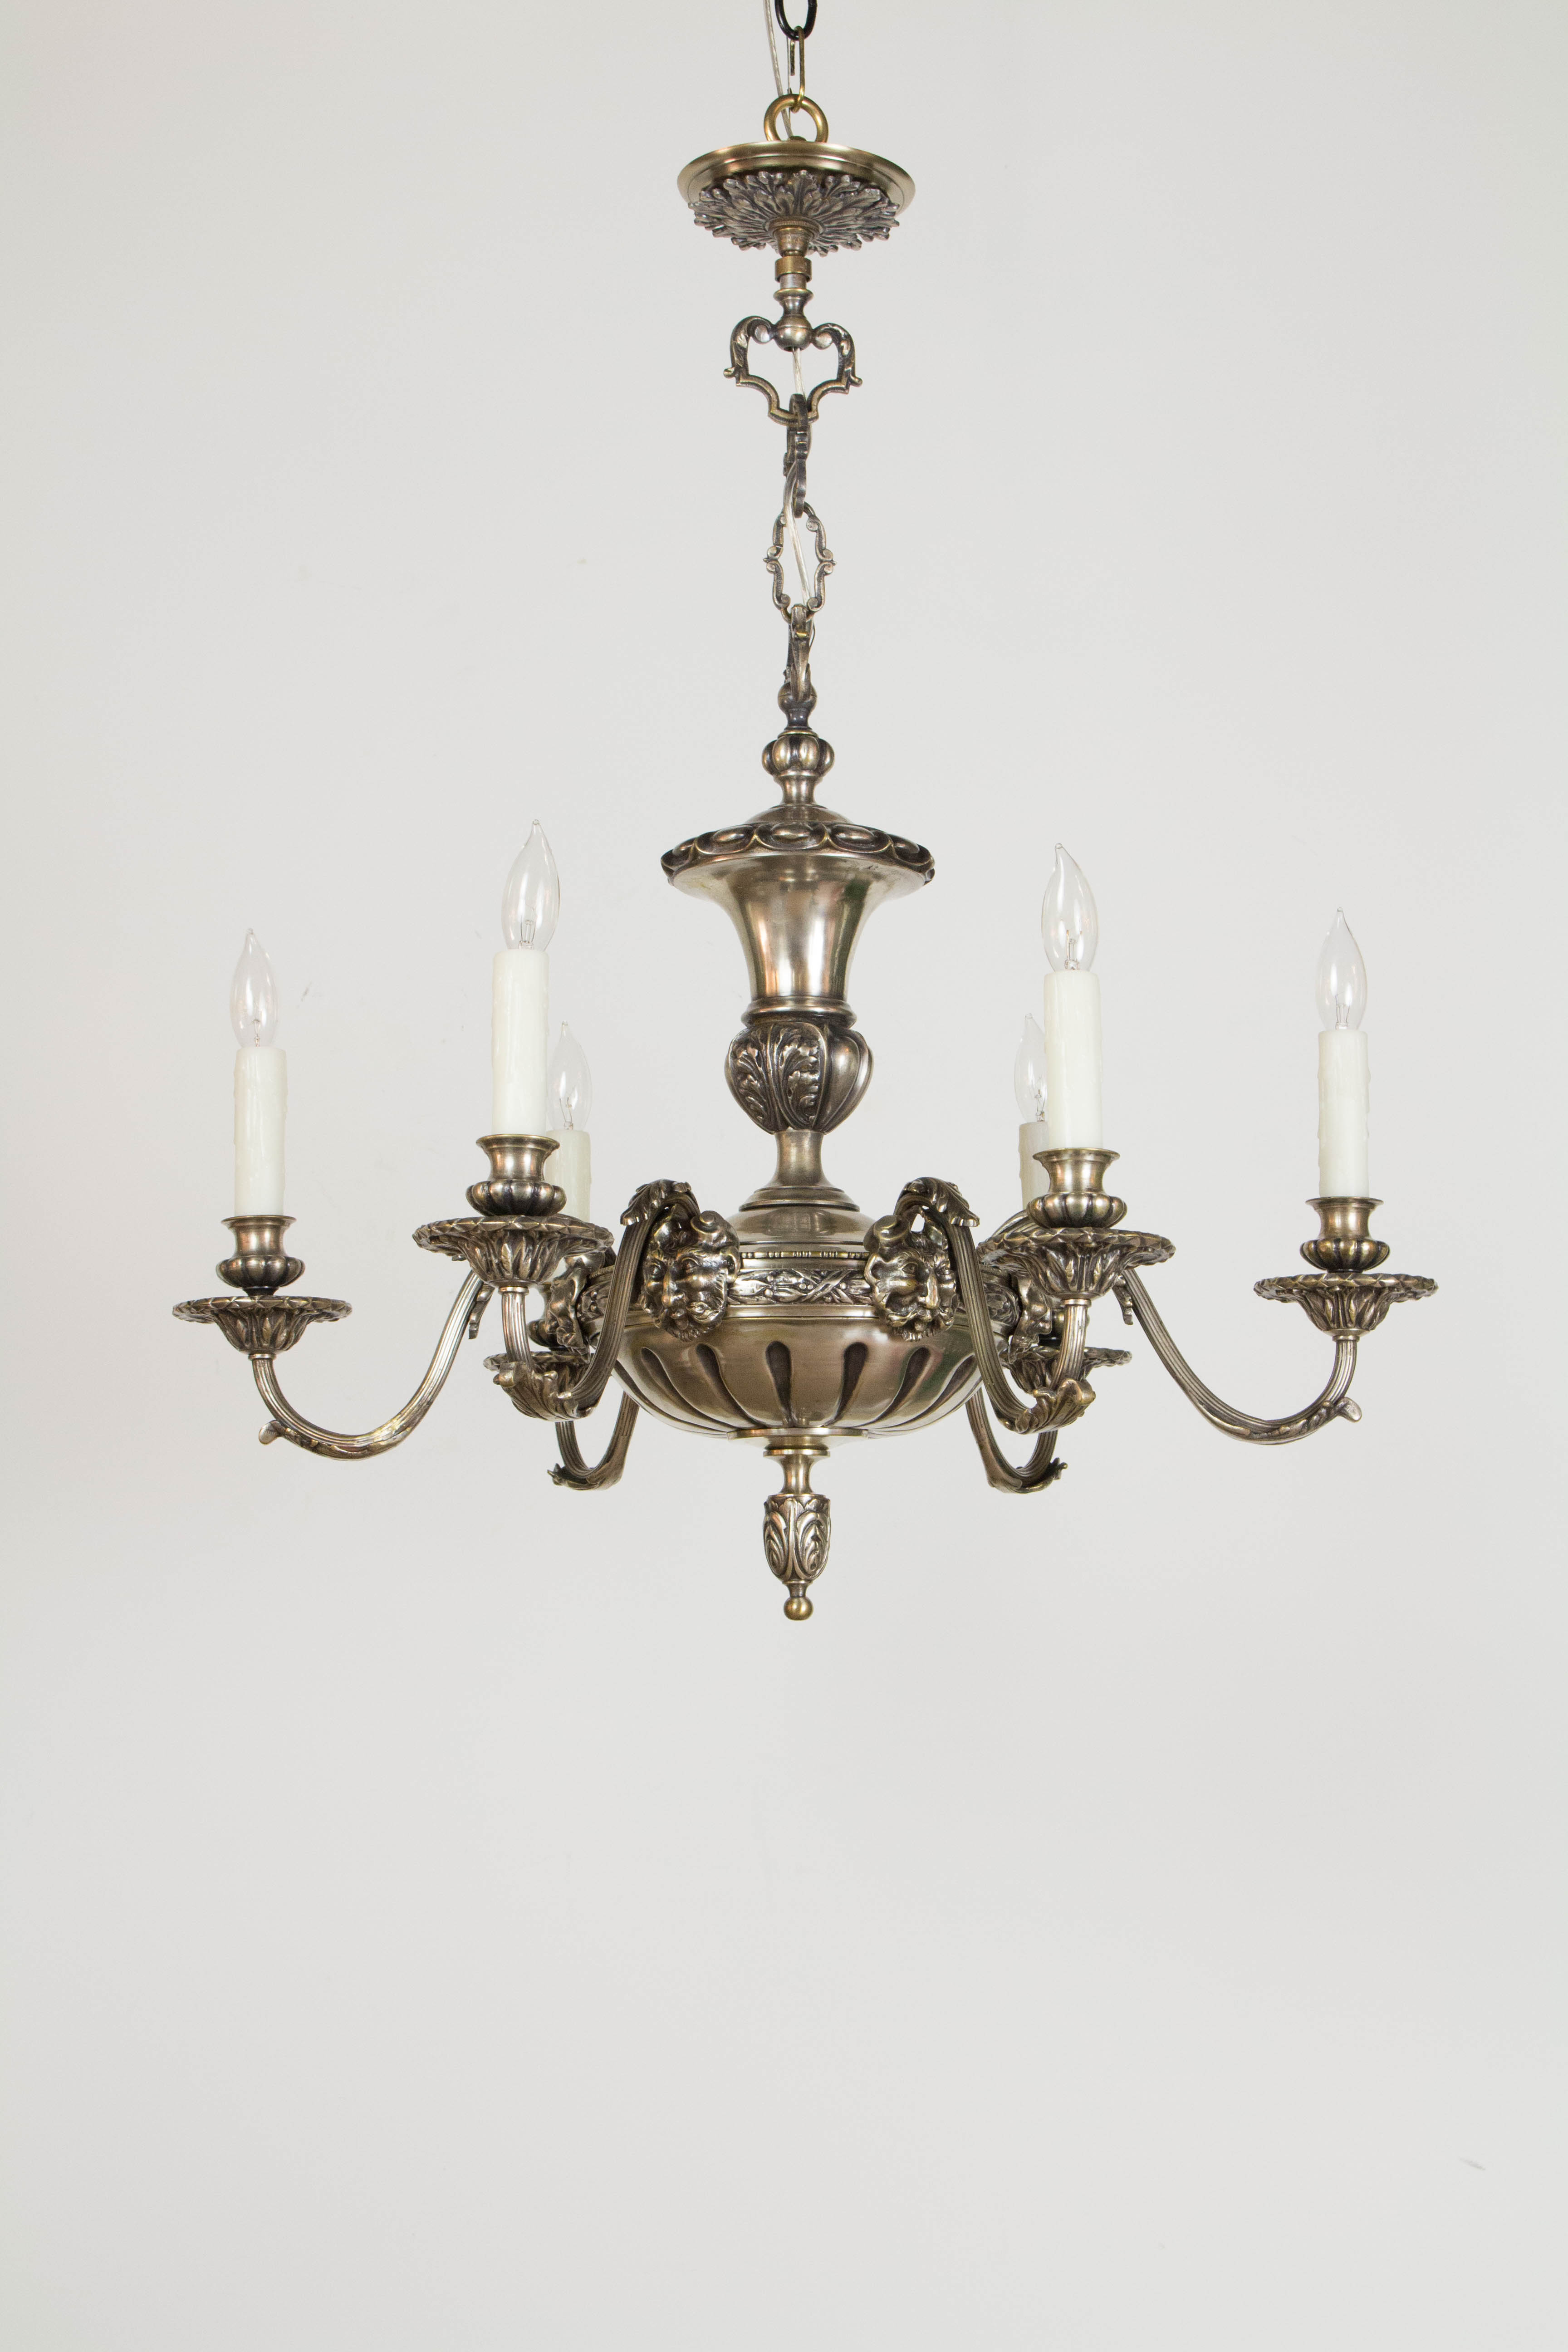 & Antique Silver Satyr Six Arm Chandelier - Appleton Antique Lighting